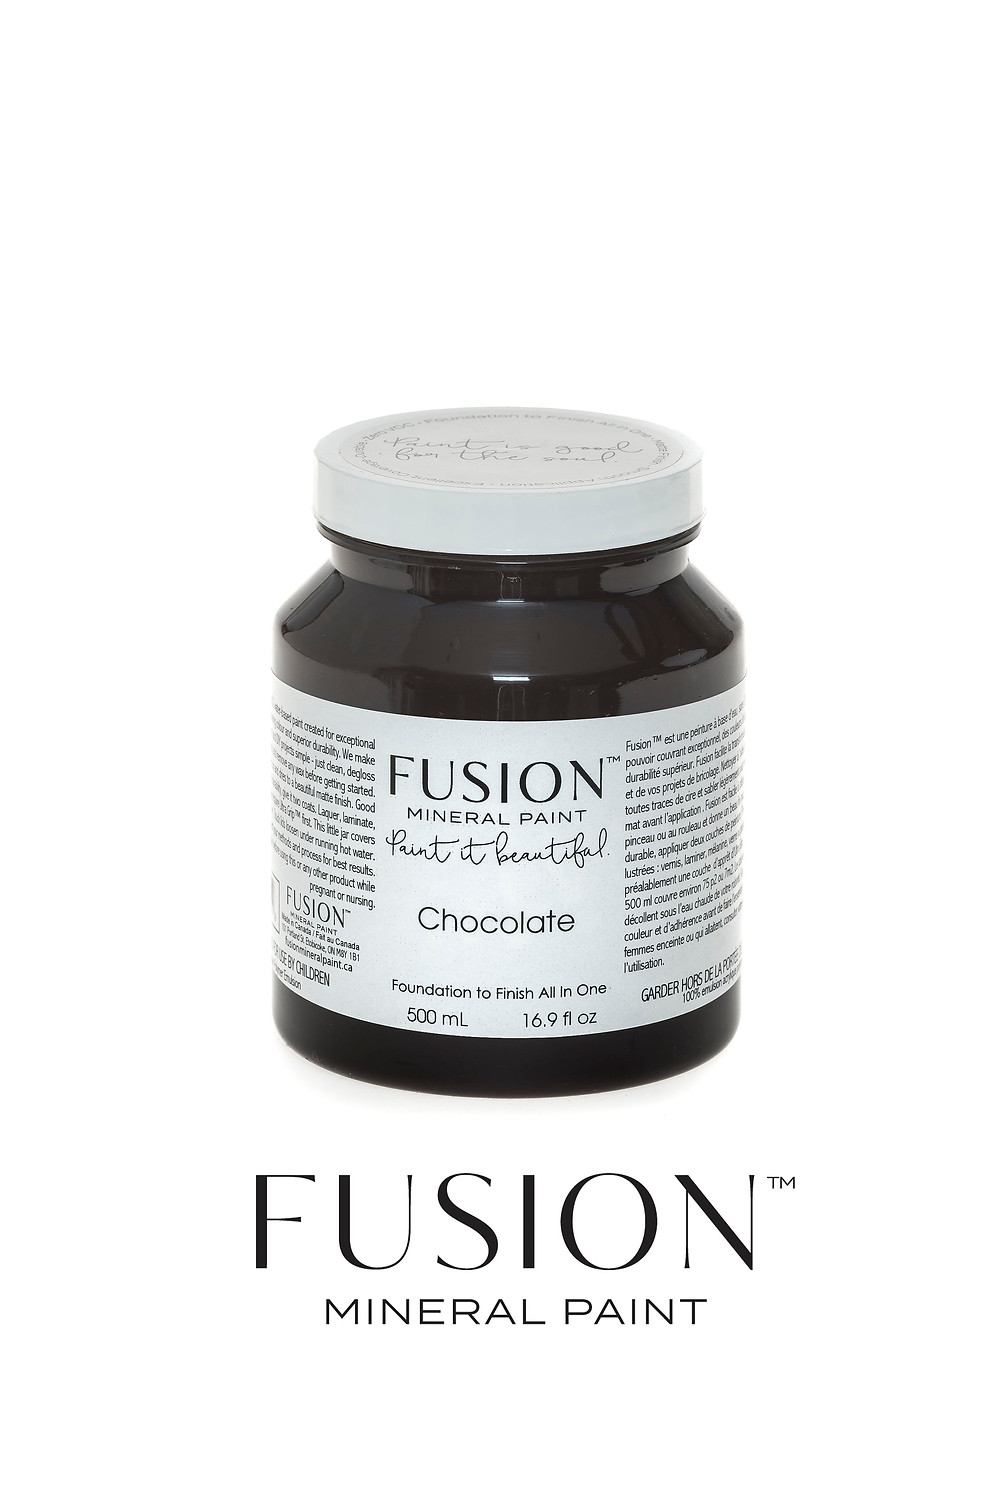 Fusion Chocolate Mineral Paint